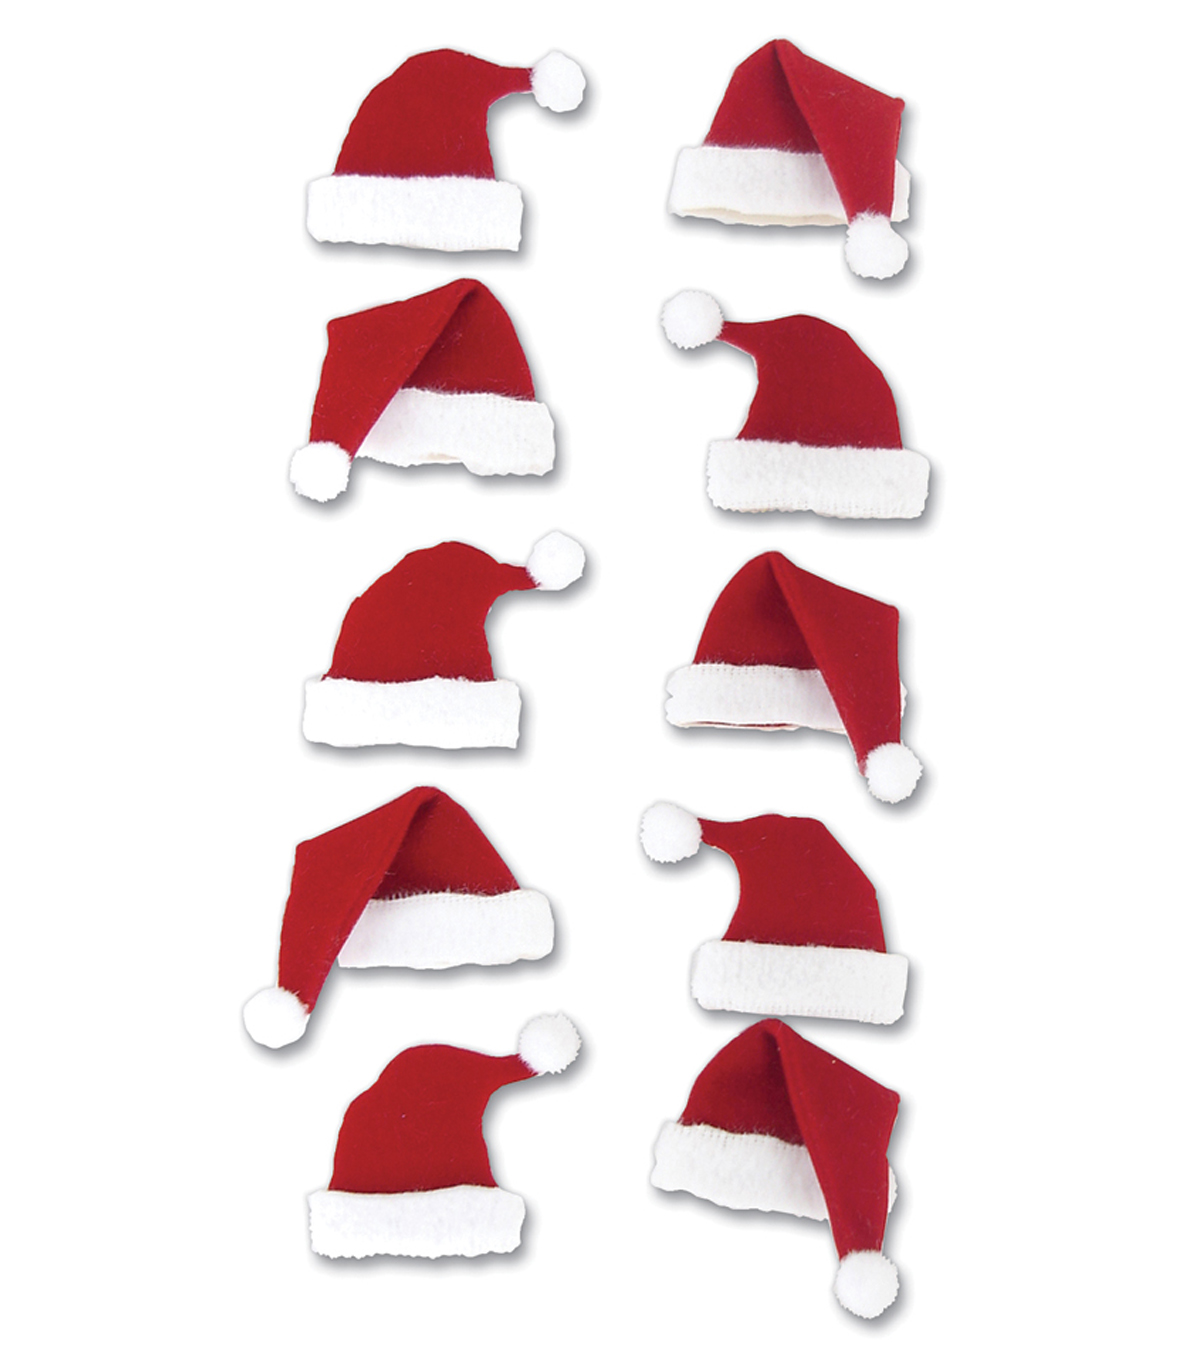 Jolee\u0027s Boutique Le Grande 10 pk Dimensional Stickers-Santa Hats